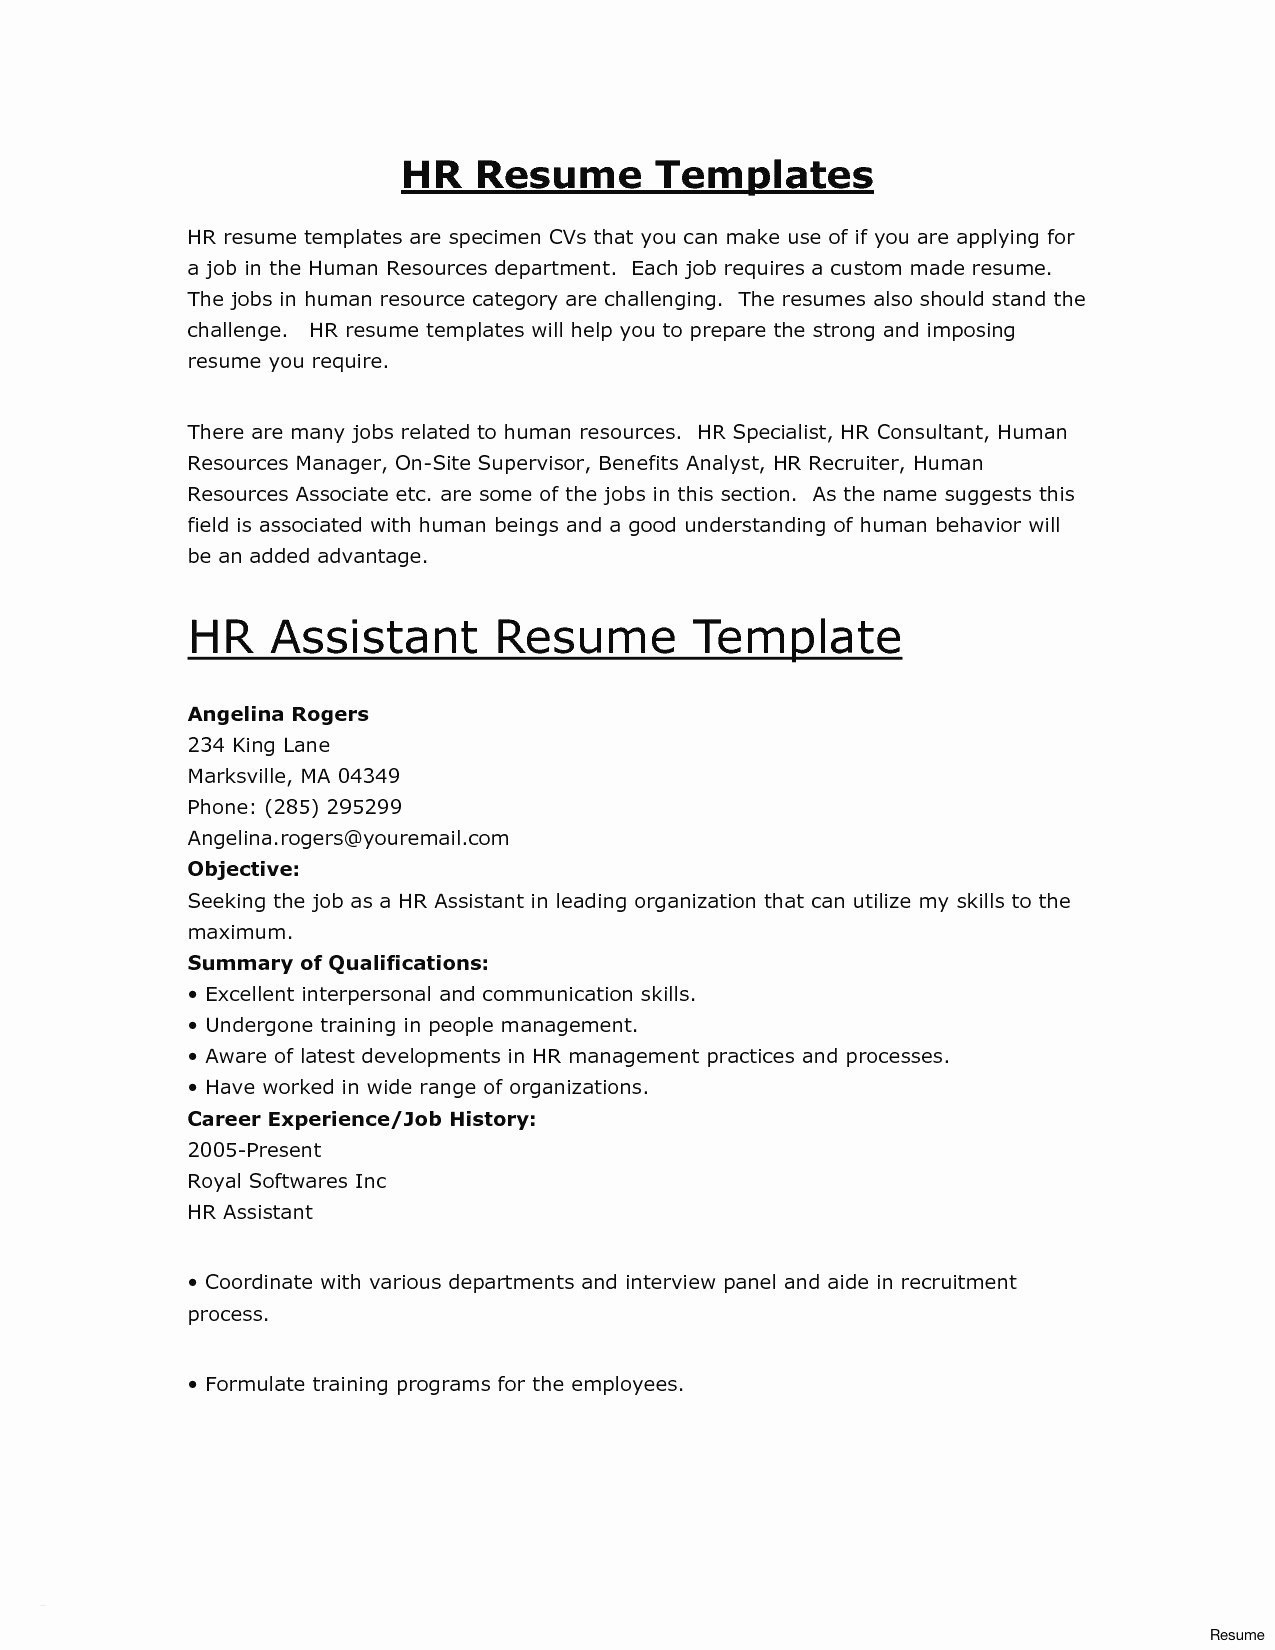 self employment letter template example-How Do I Write A Resume Best Self Employed Resume New Luxury Examples Resumes Ecologist 6-r